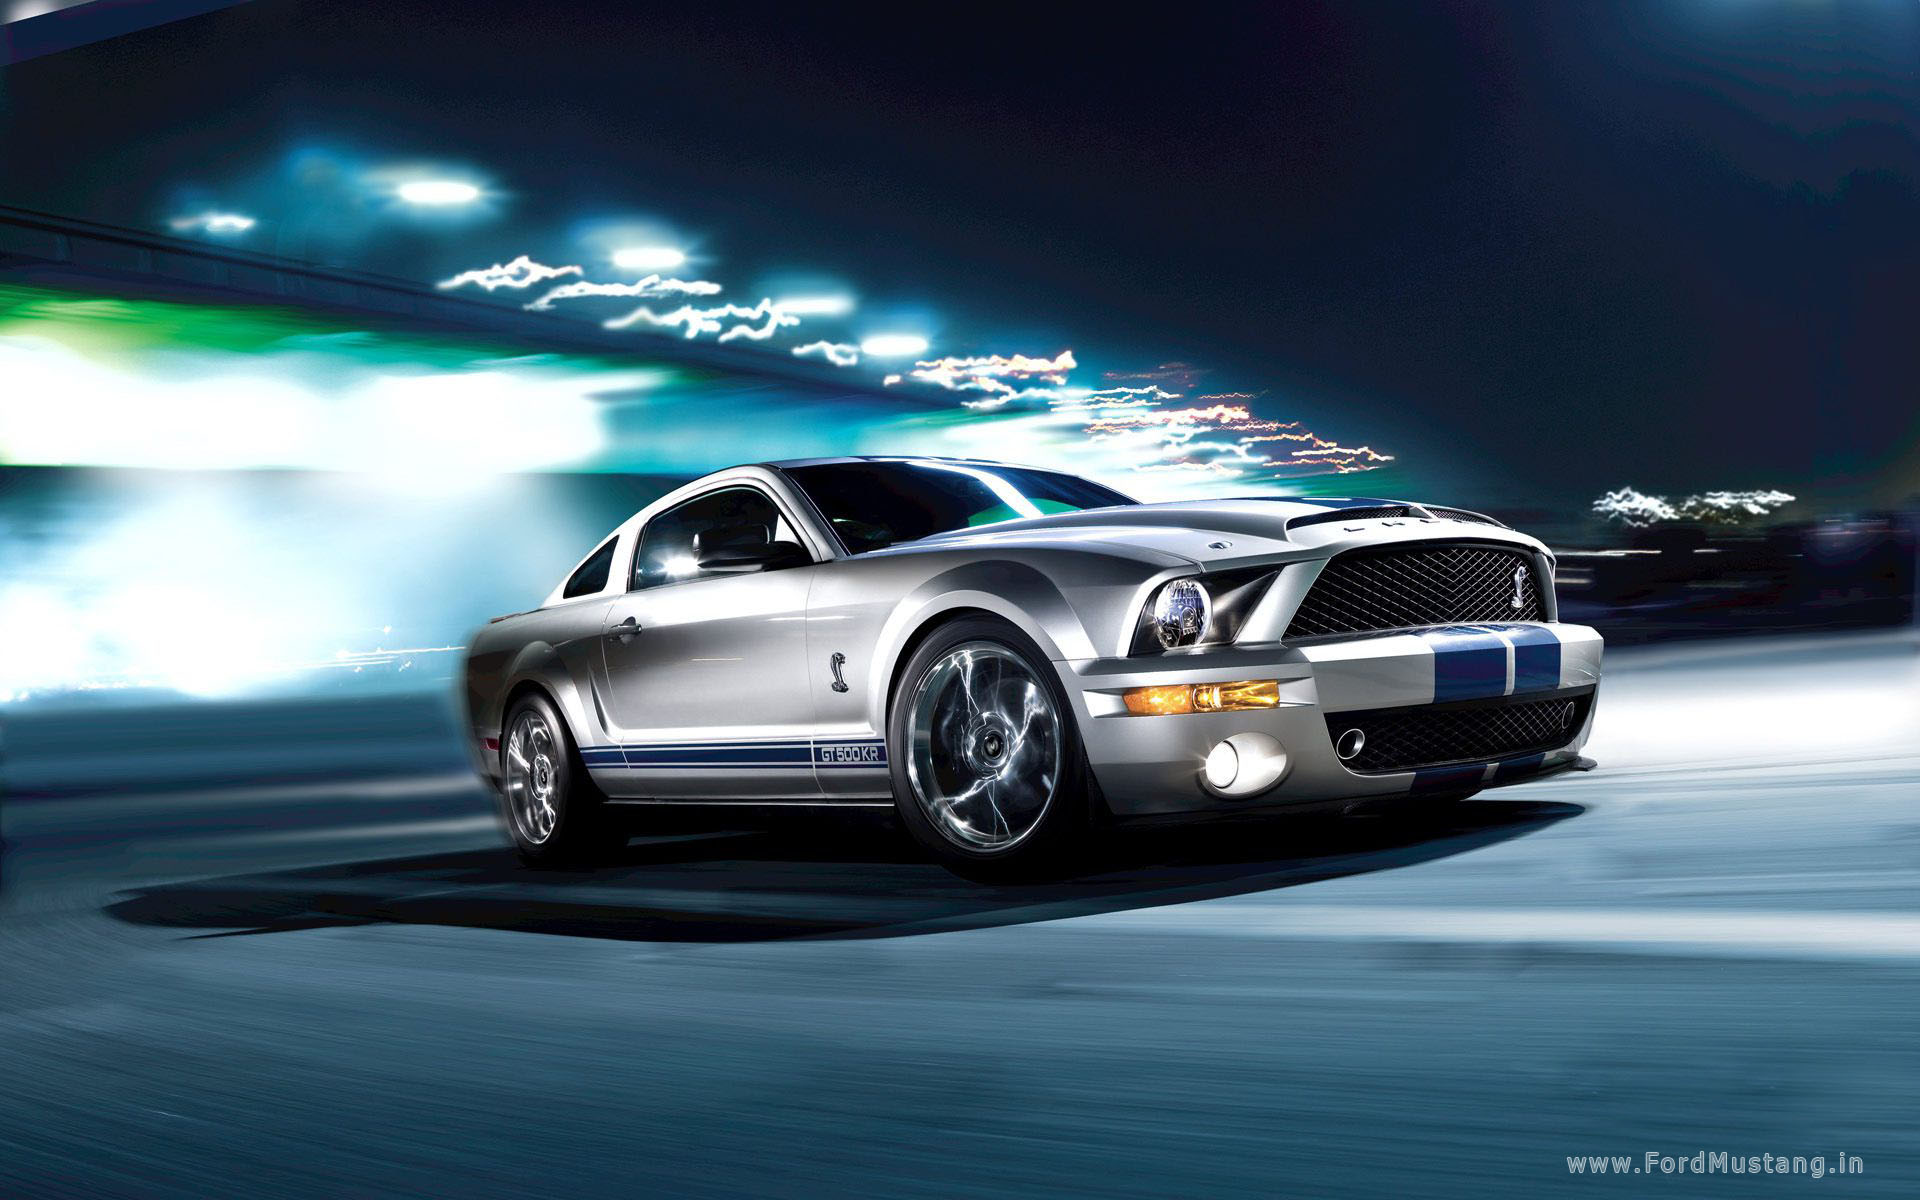 Ford Mustang Wallpapers HQ High Quality